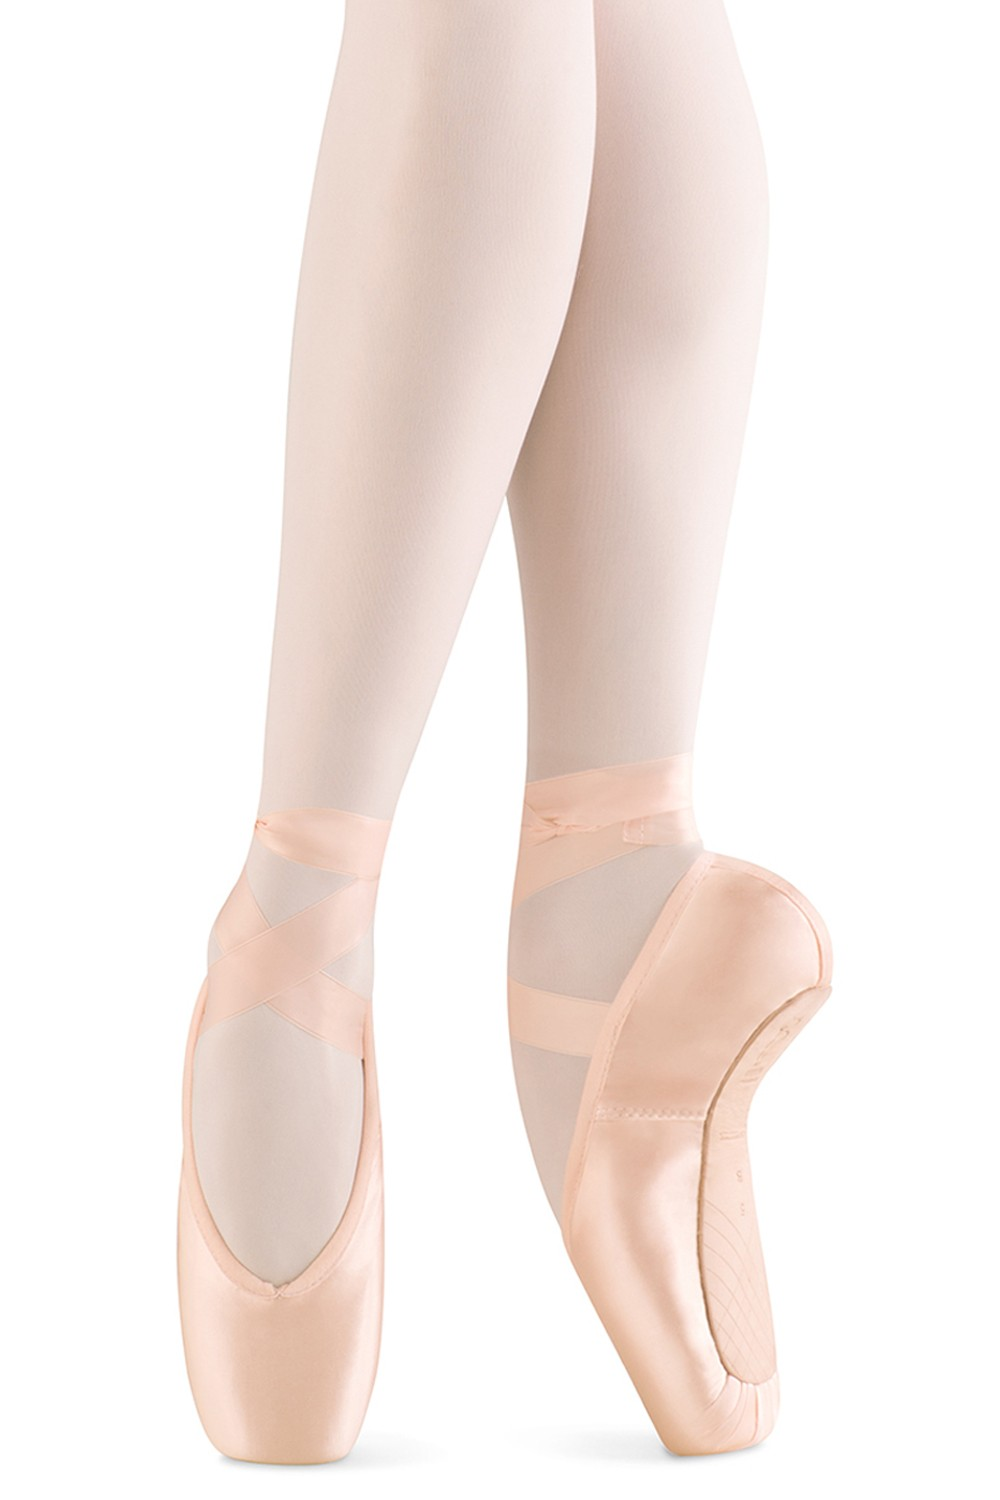 Aspiration Girls Pointe Shoes